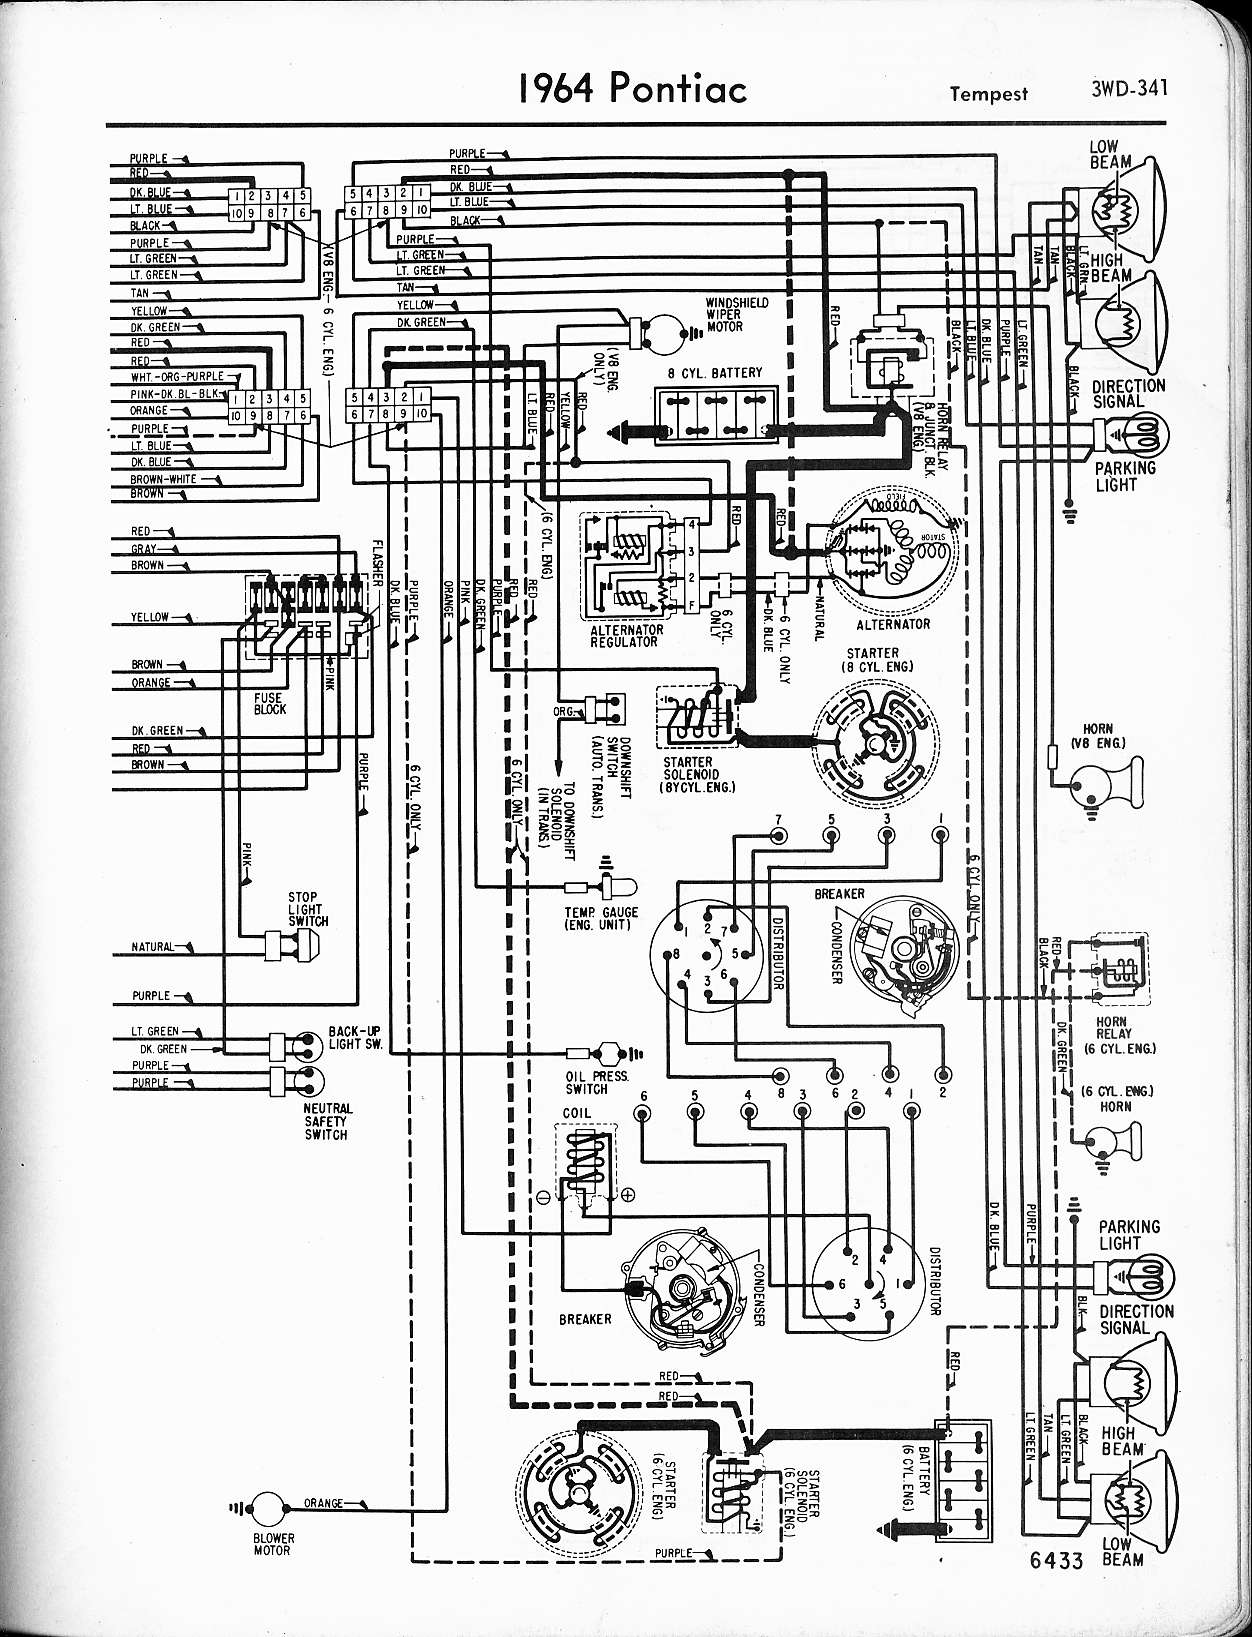 1971 Pontiac Lemans Wiring Diagram Opinions About Fuse Box Images Gallery